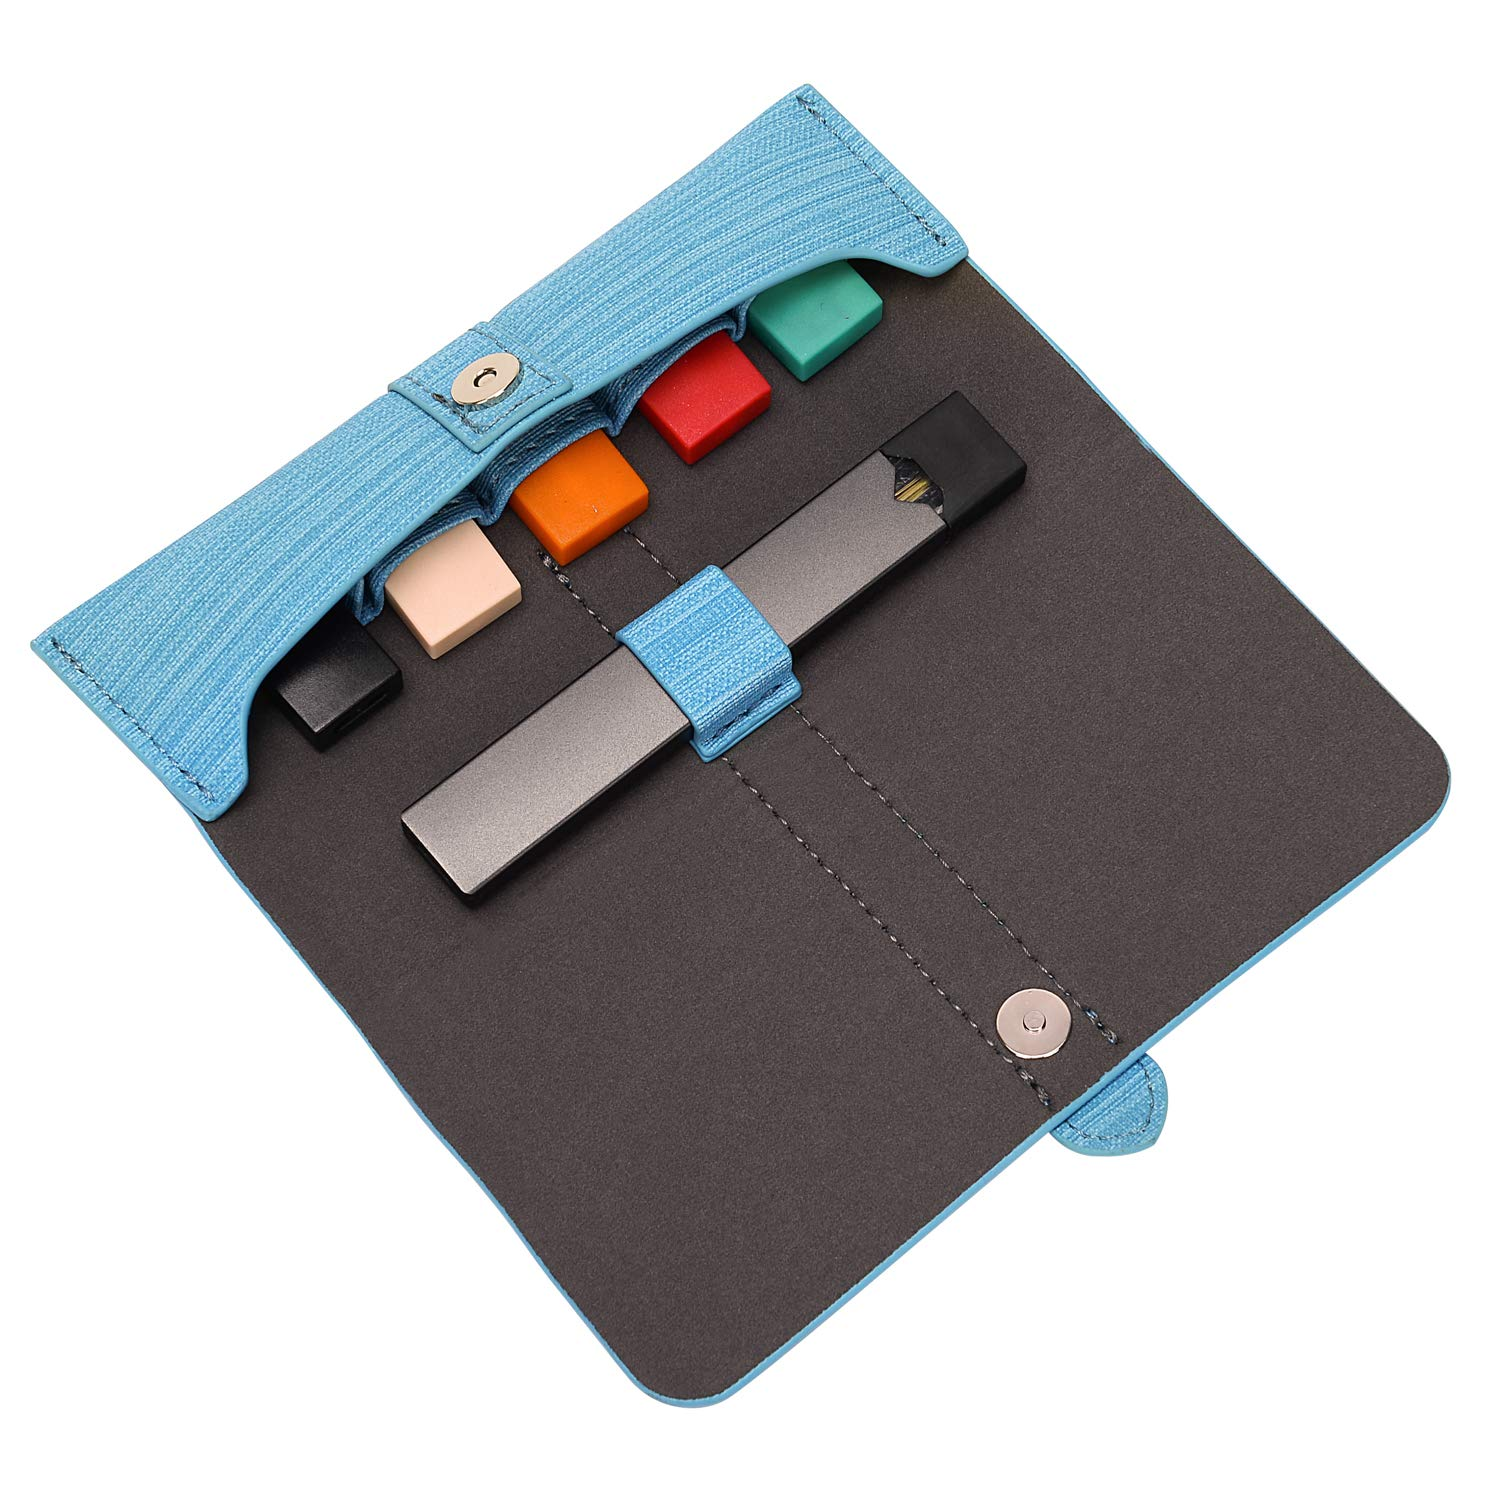 Electronic Cigarette Case. Easily Opens with Magnet Snap. Slim, Compact, Stylish for JUUL. Durable Faux Vegan Leather Lasts,(Device not Included) (Caribbean Blue)